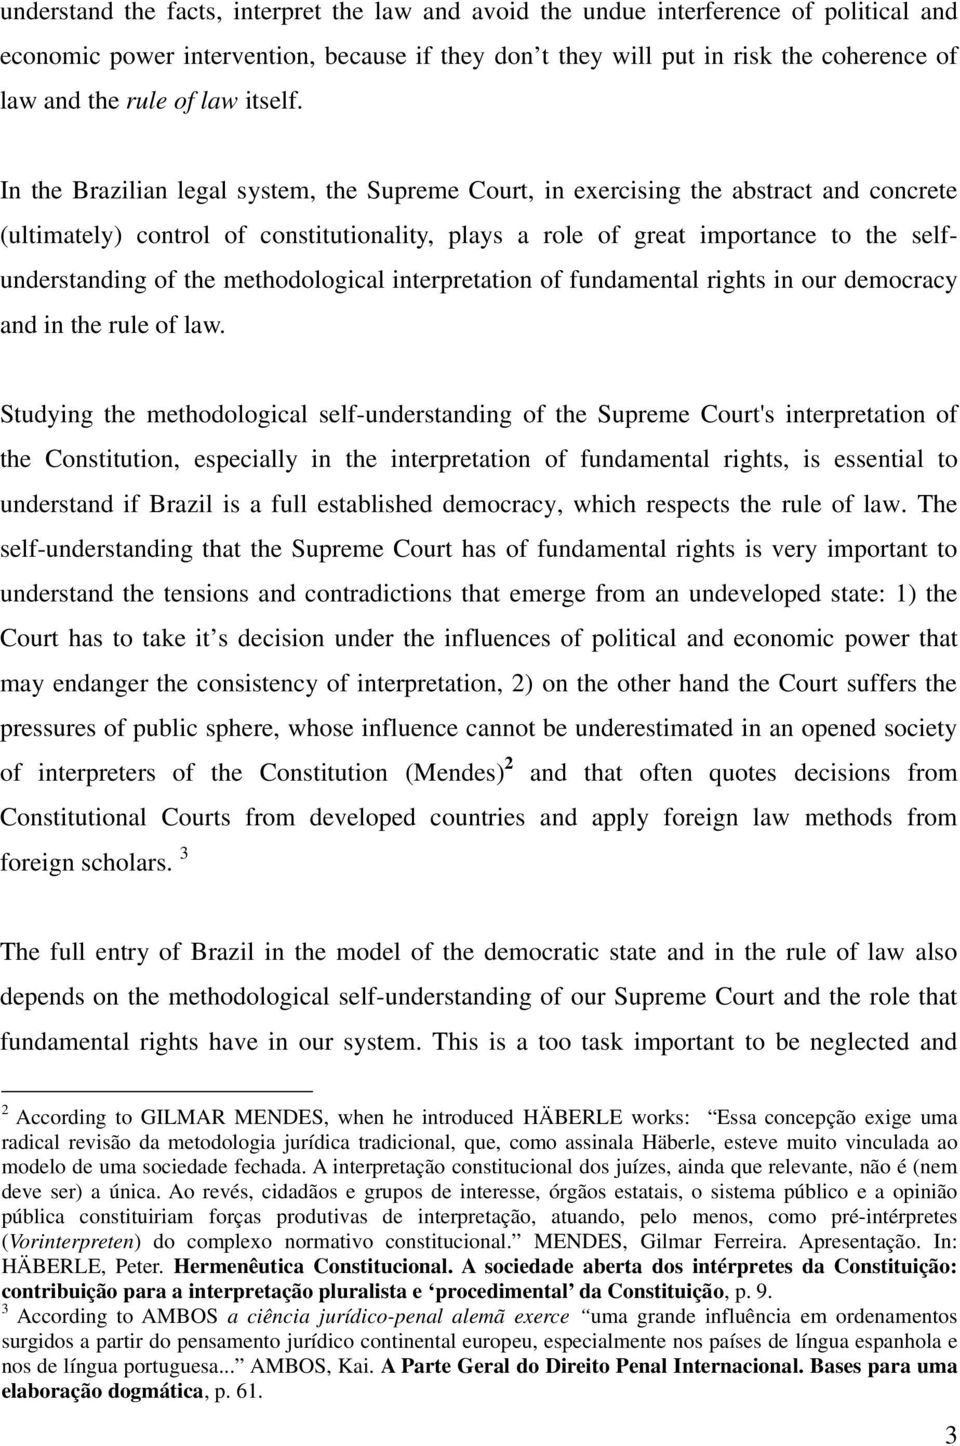 In the Brazilian legal system, the Supreme Court, in exercising the abstract and concrete (ultimately) control of constitutionality, plays a role of great importance to the selfunderstanding of the